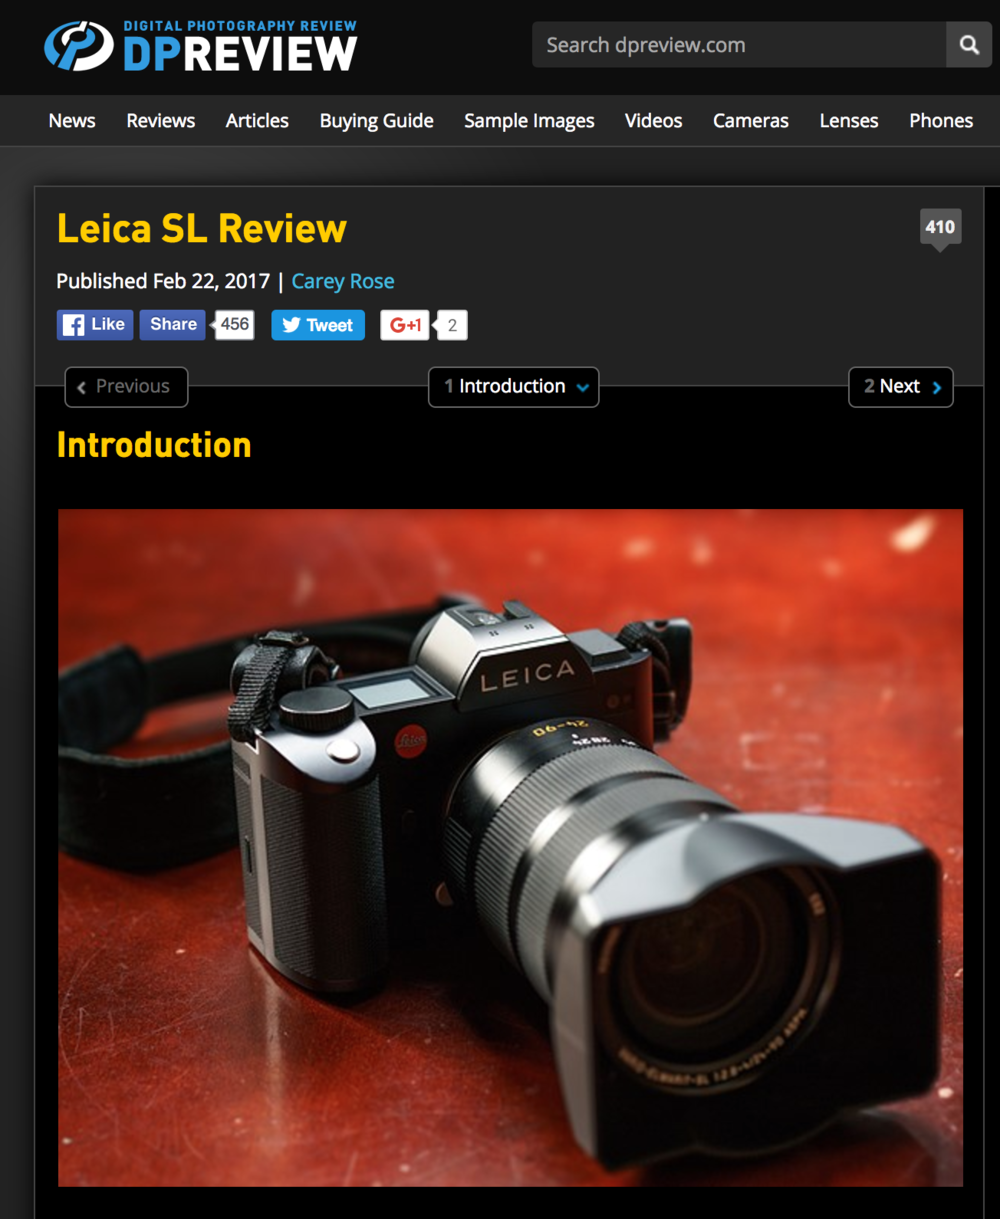 https://www.dpreview.com/reviews/leica-sl-typ-601